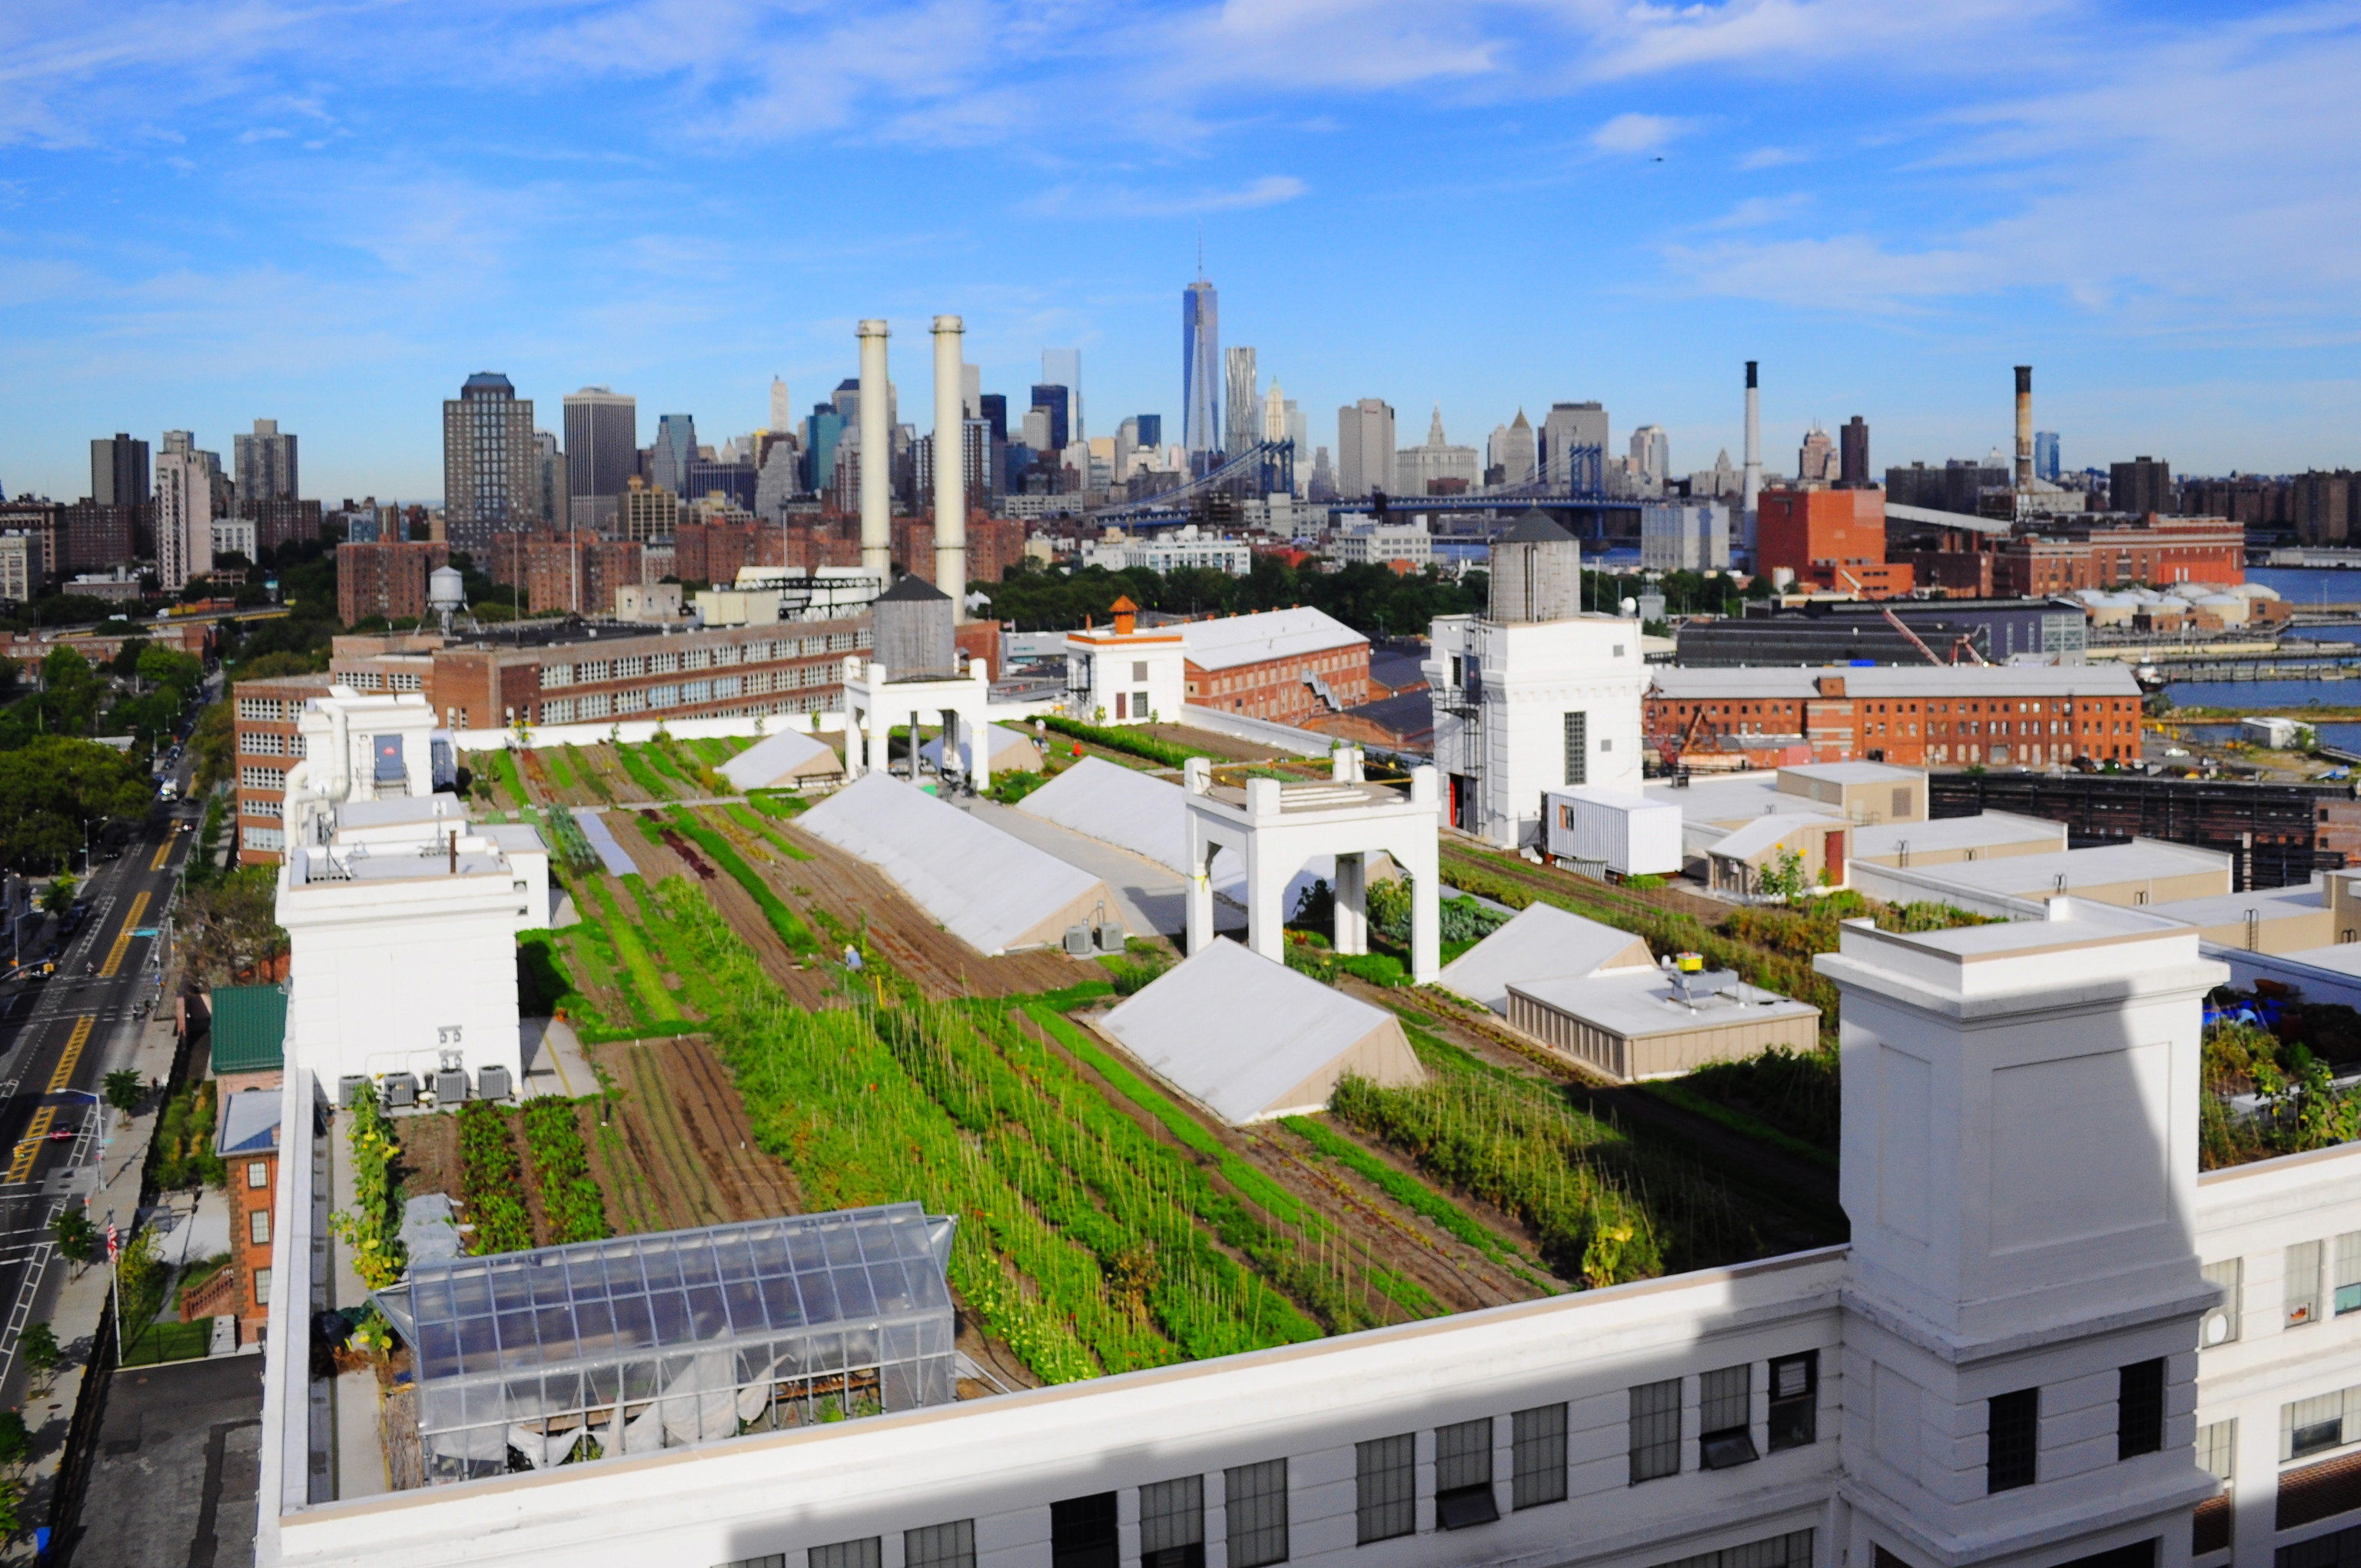 Brooklyn Grange Produce - largest rooftop soil farm